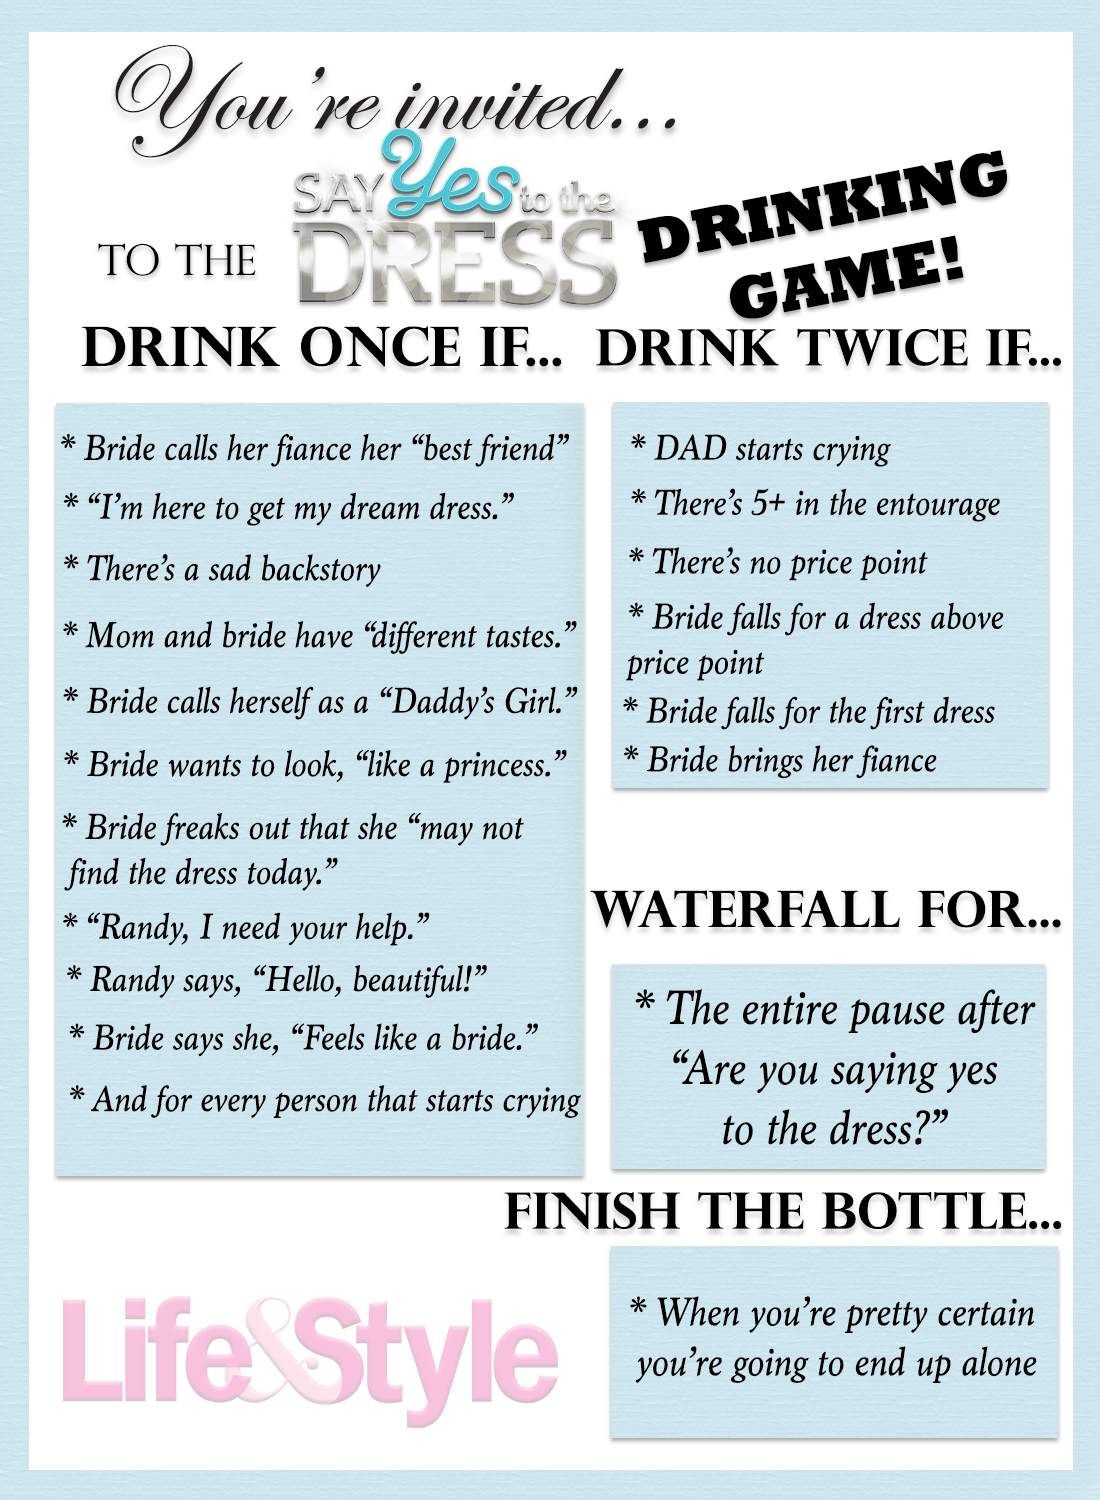 say yes to the dress drinking game